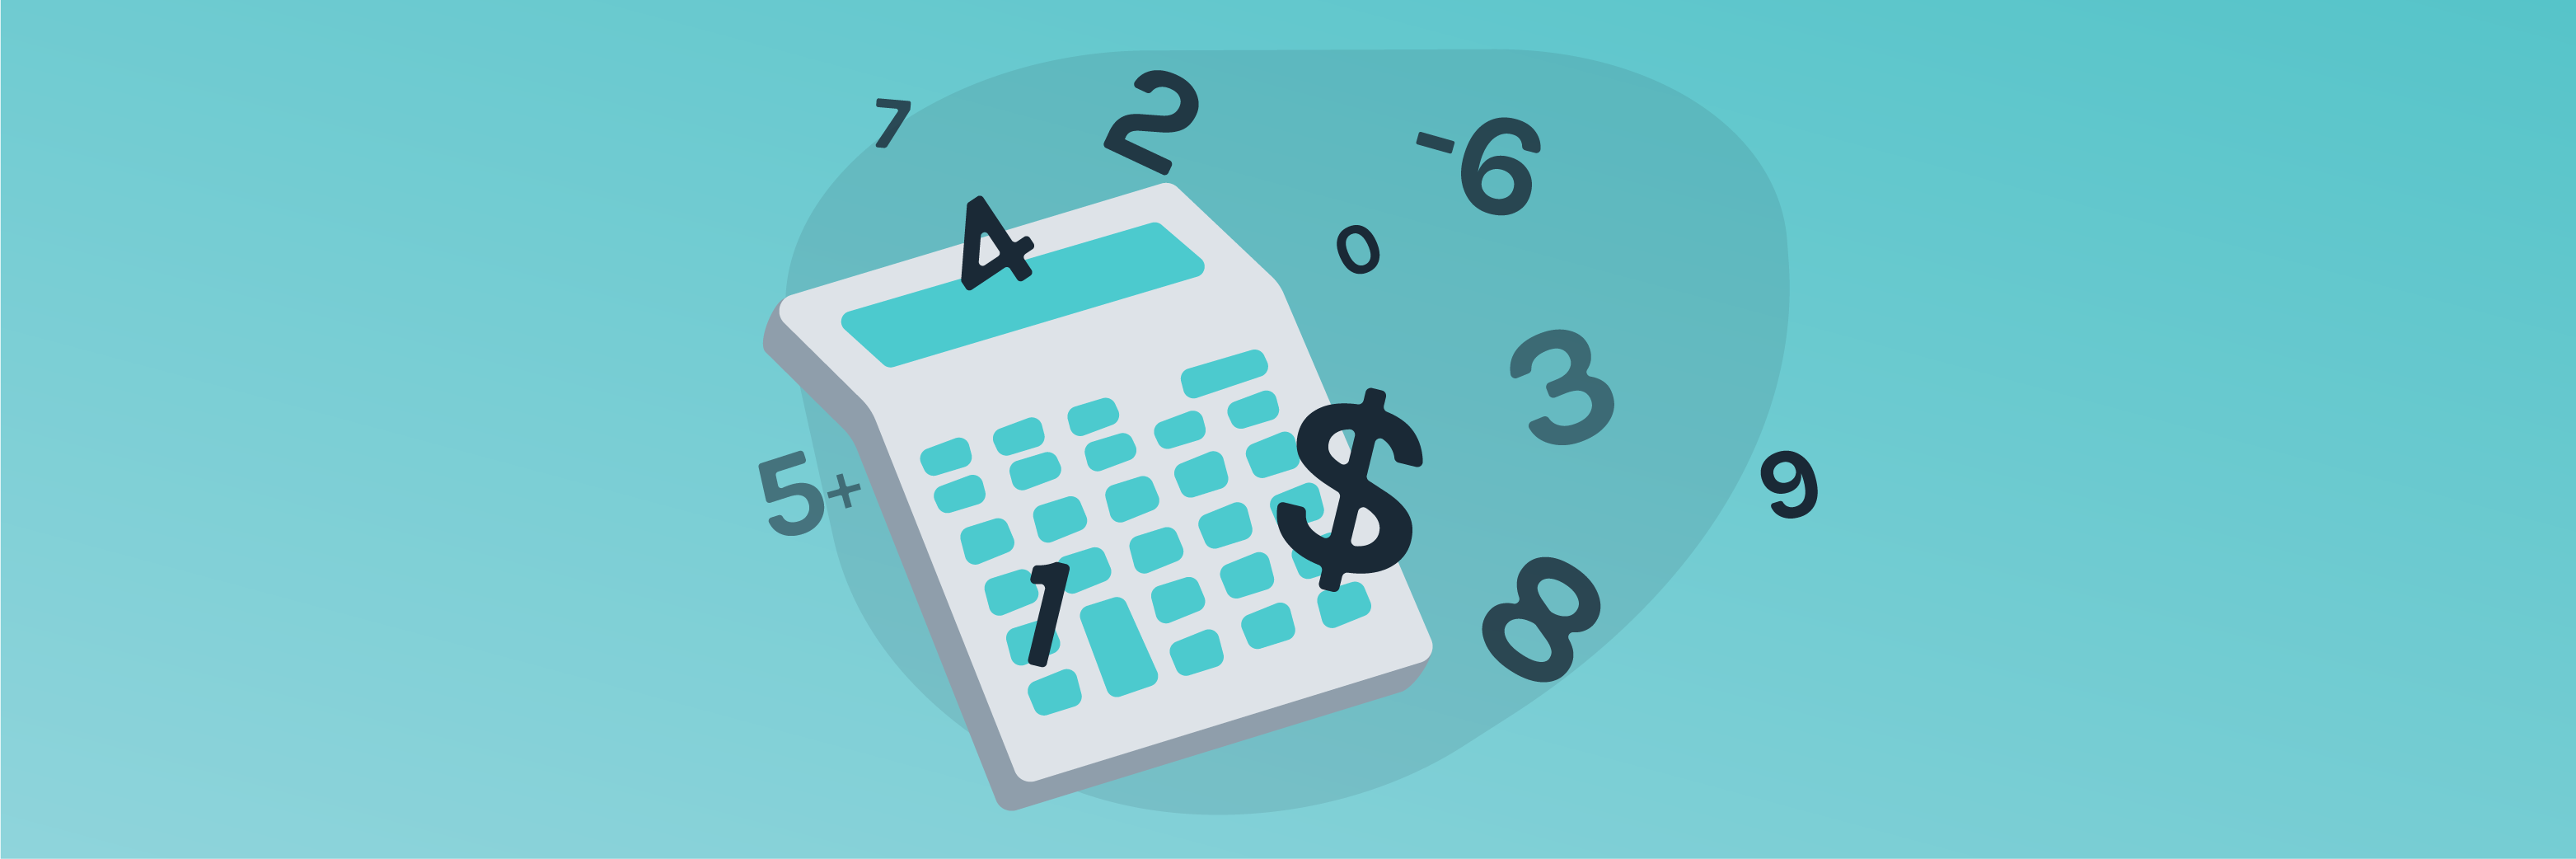 How to calculate your shipping costs in minutes